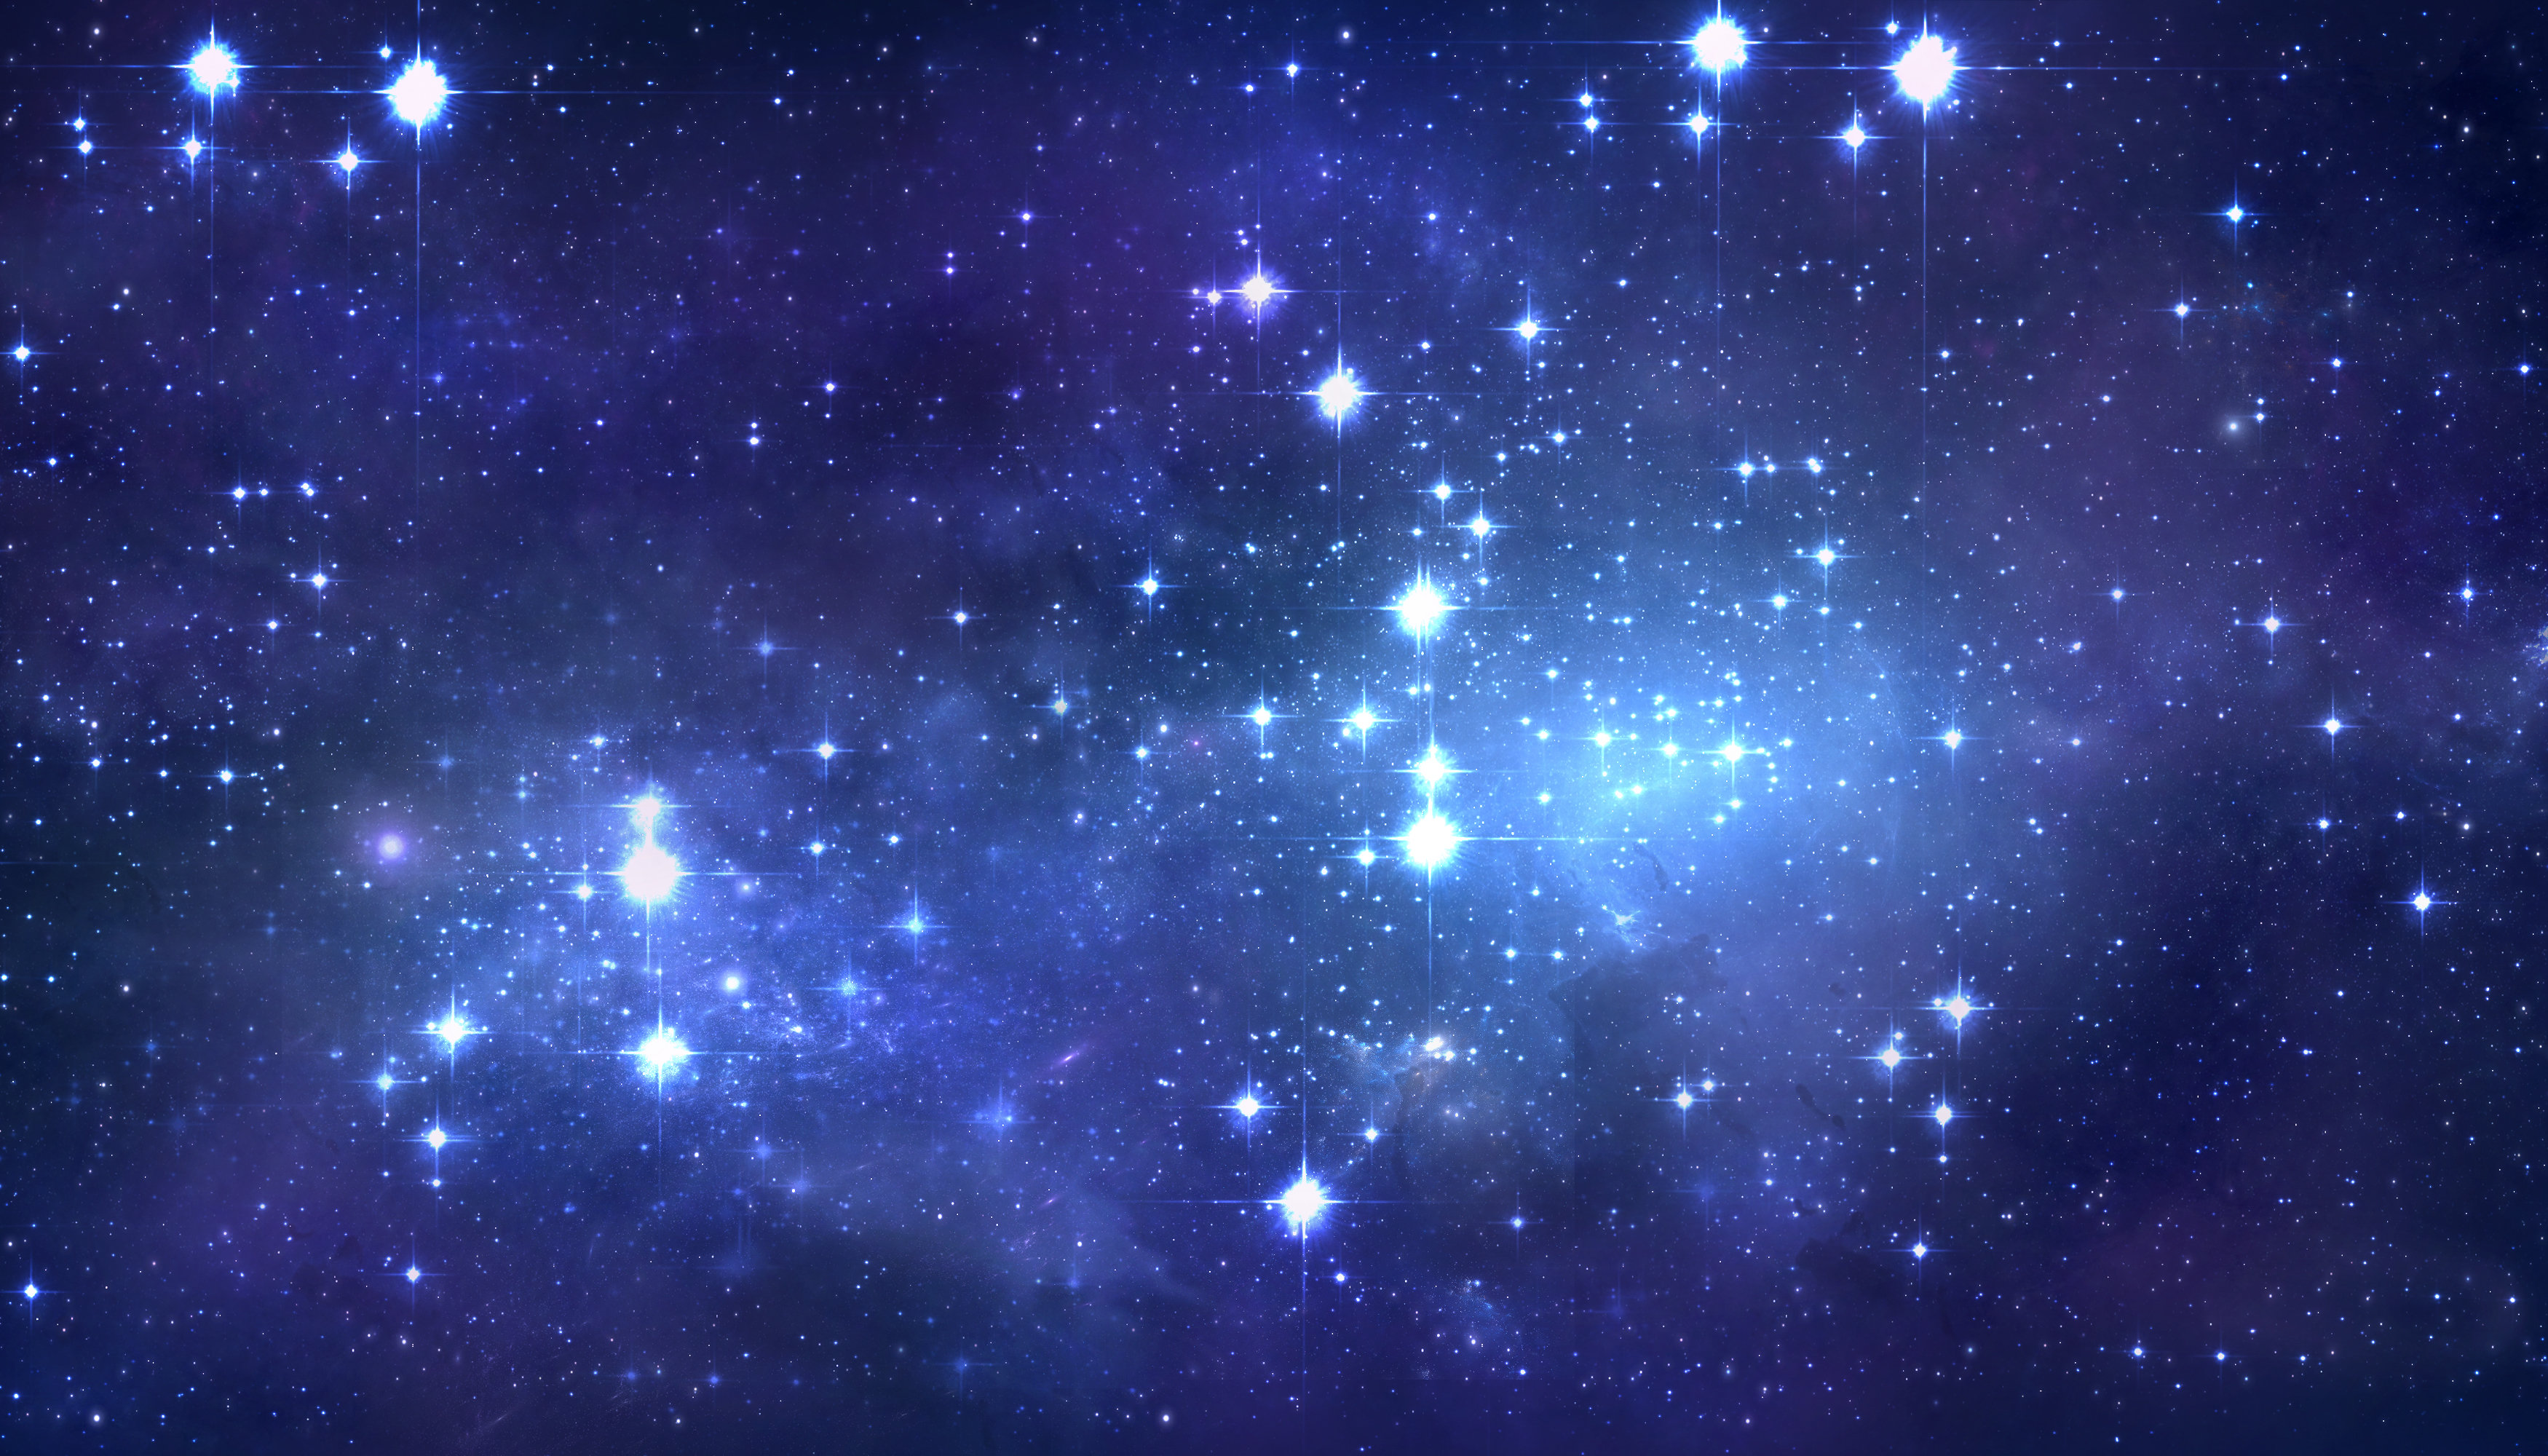 Stars in the night sky stock image Image of background